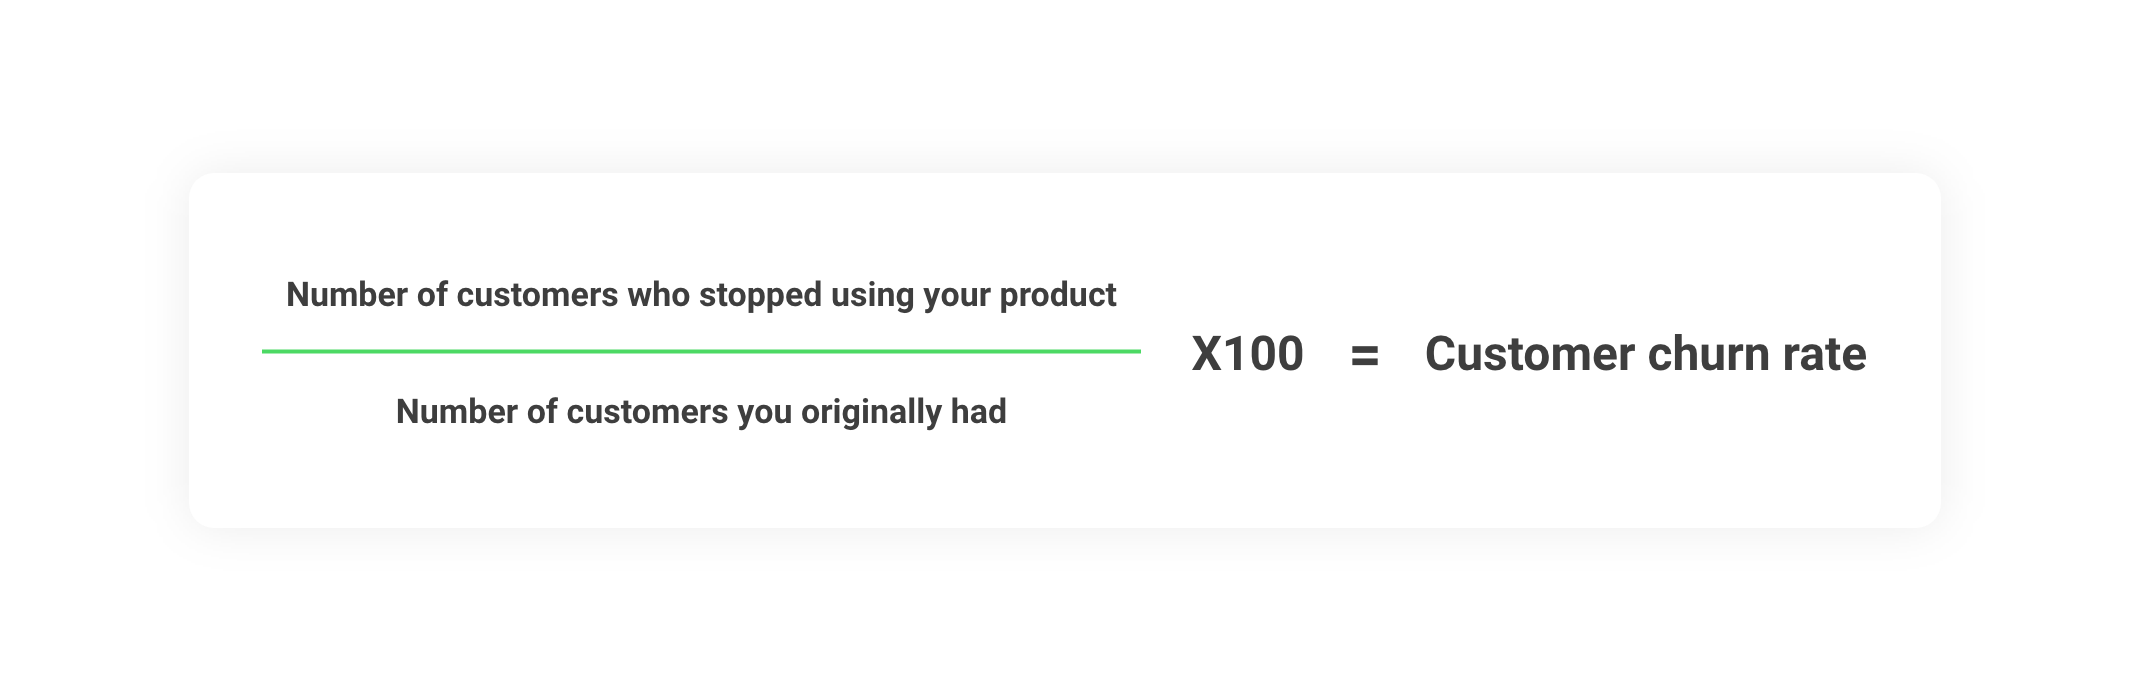 Number of customers who stopped using your product ÷ Number of customers you originally had x 100 = customer churn rate